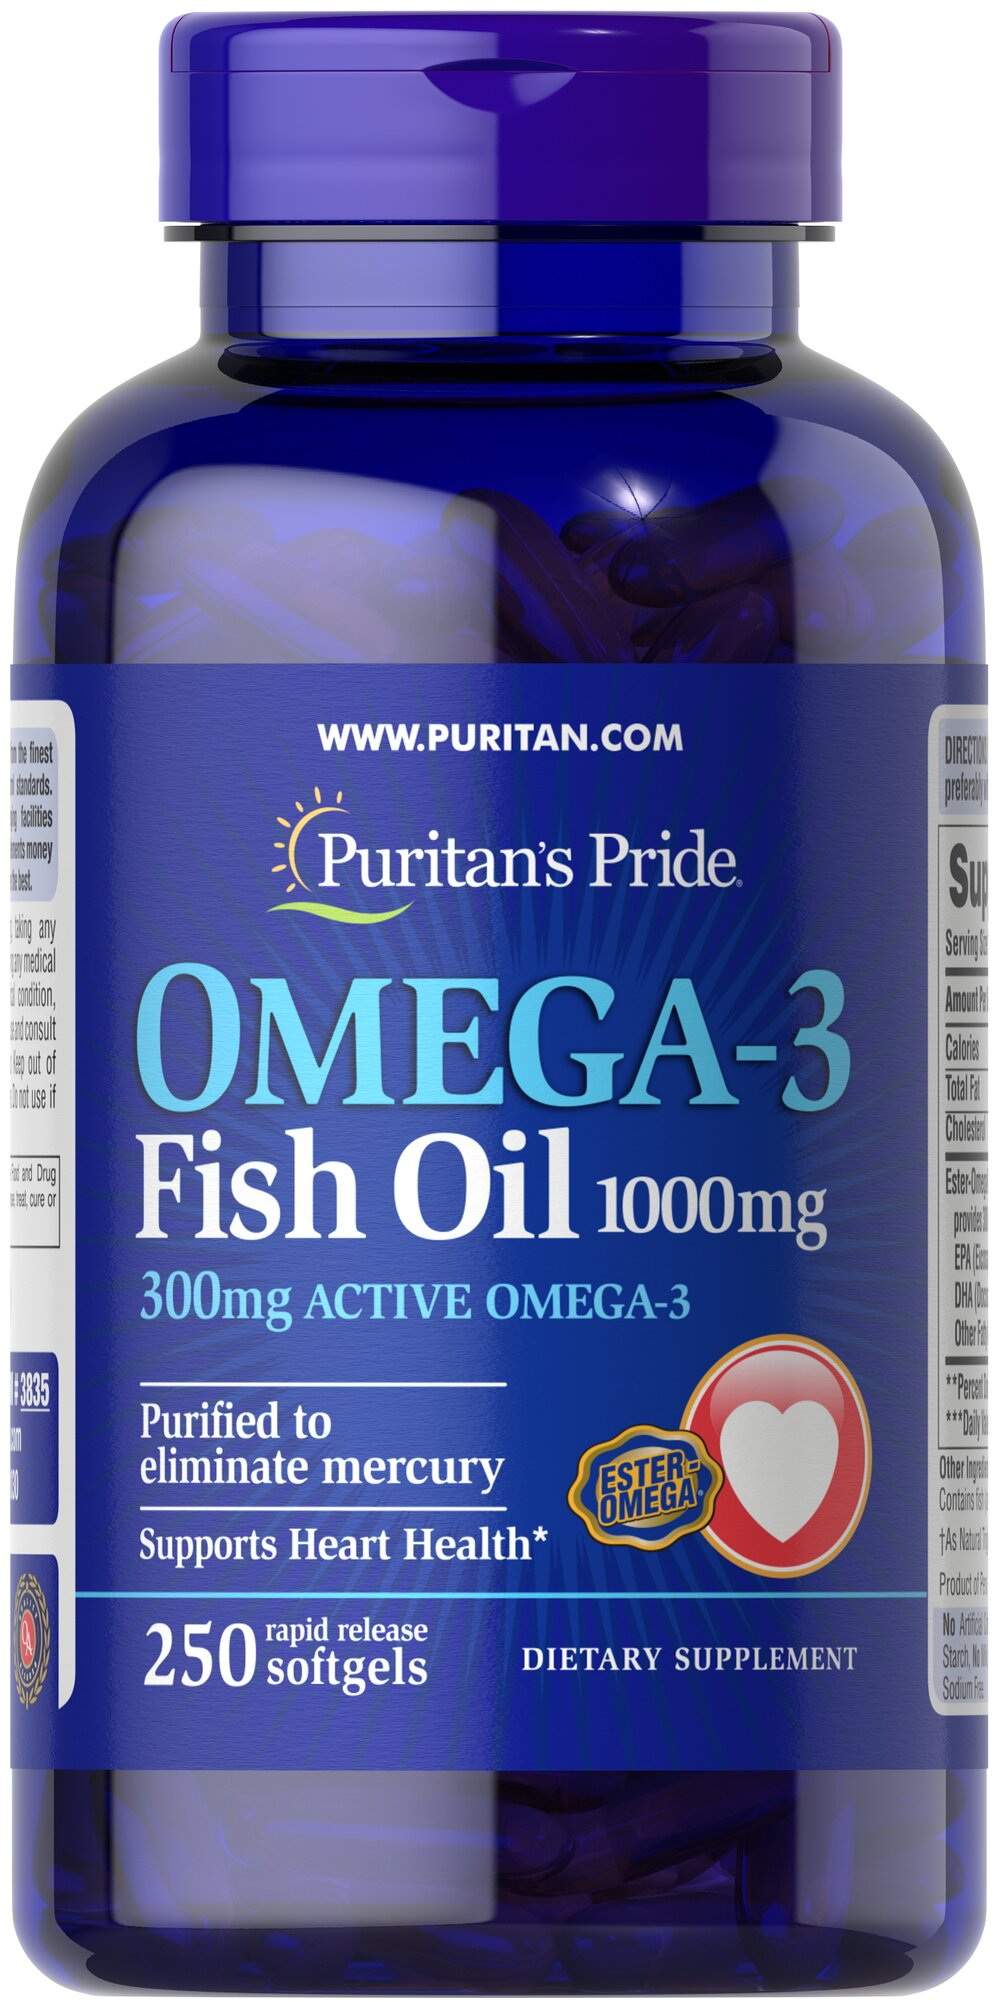 Omega-3 Fish Oil 1000 mg (300 mg Active Omega-3)  250 Softgels 1000 mg $21.59